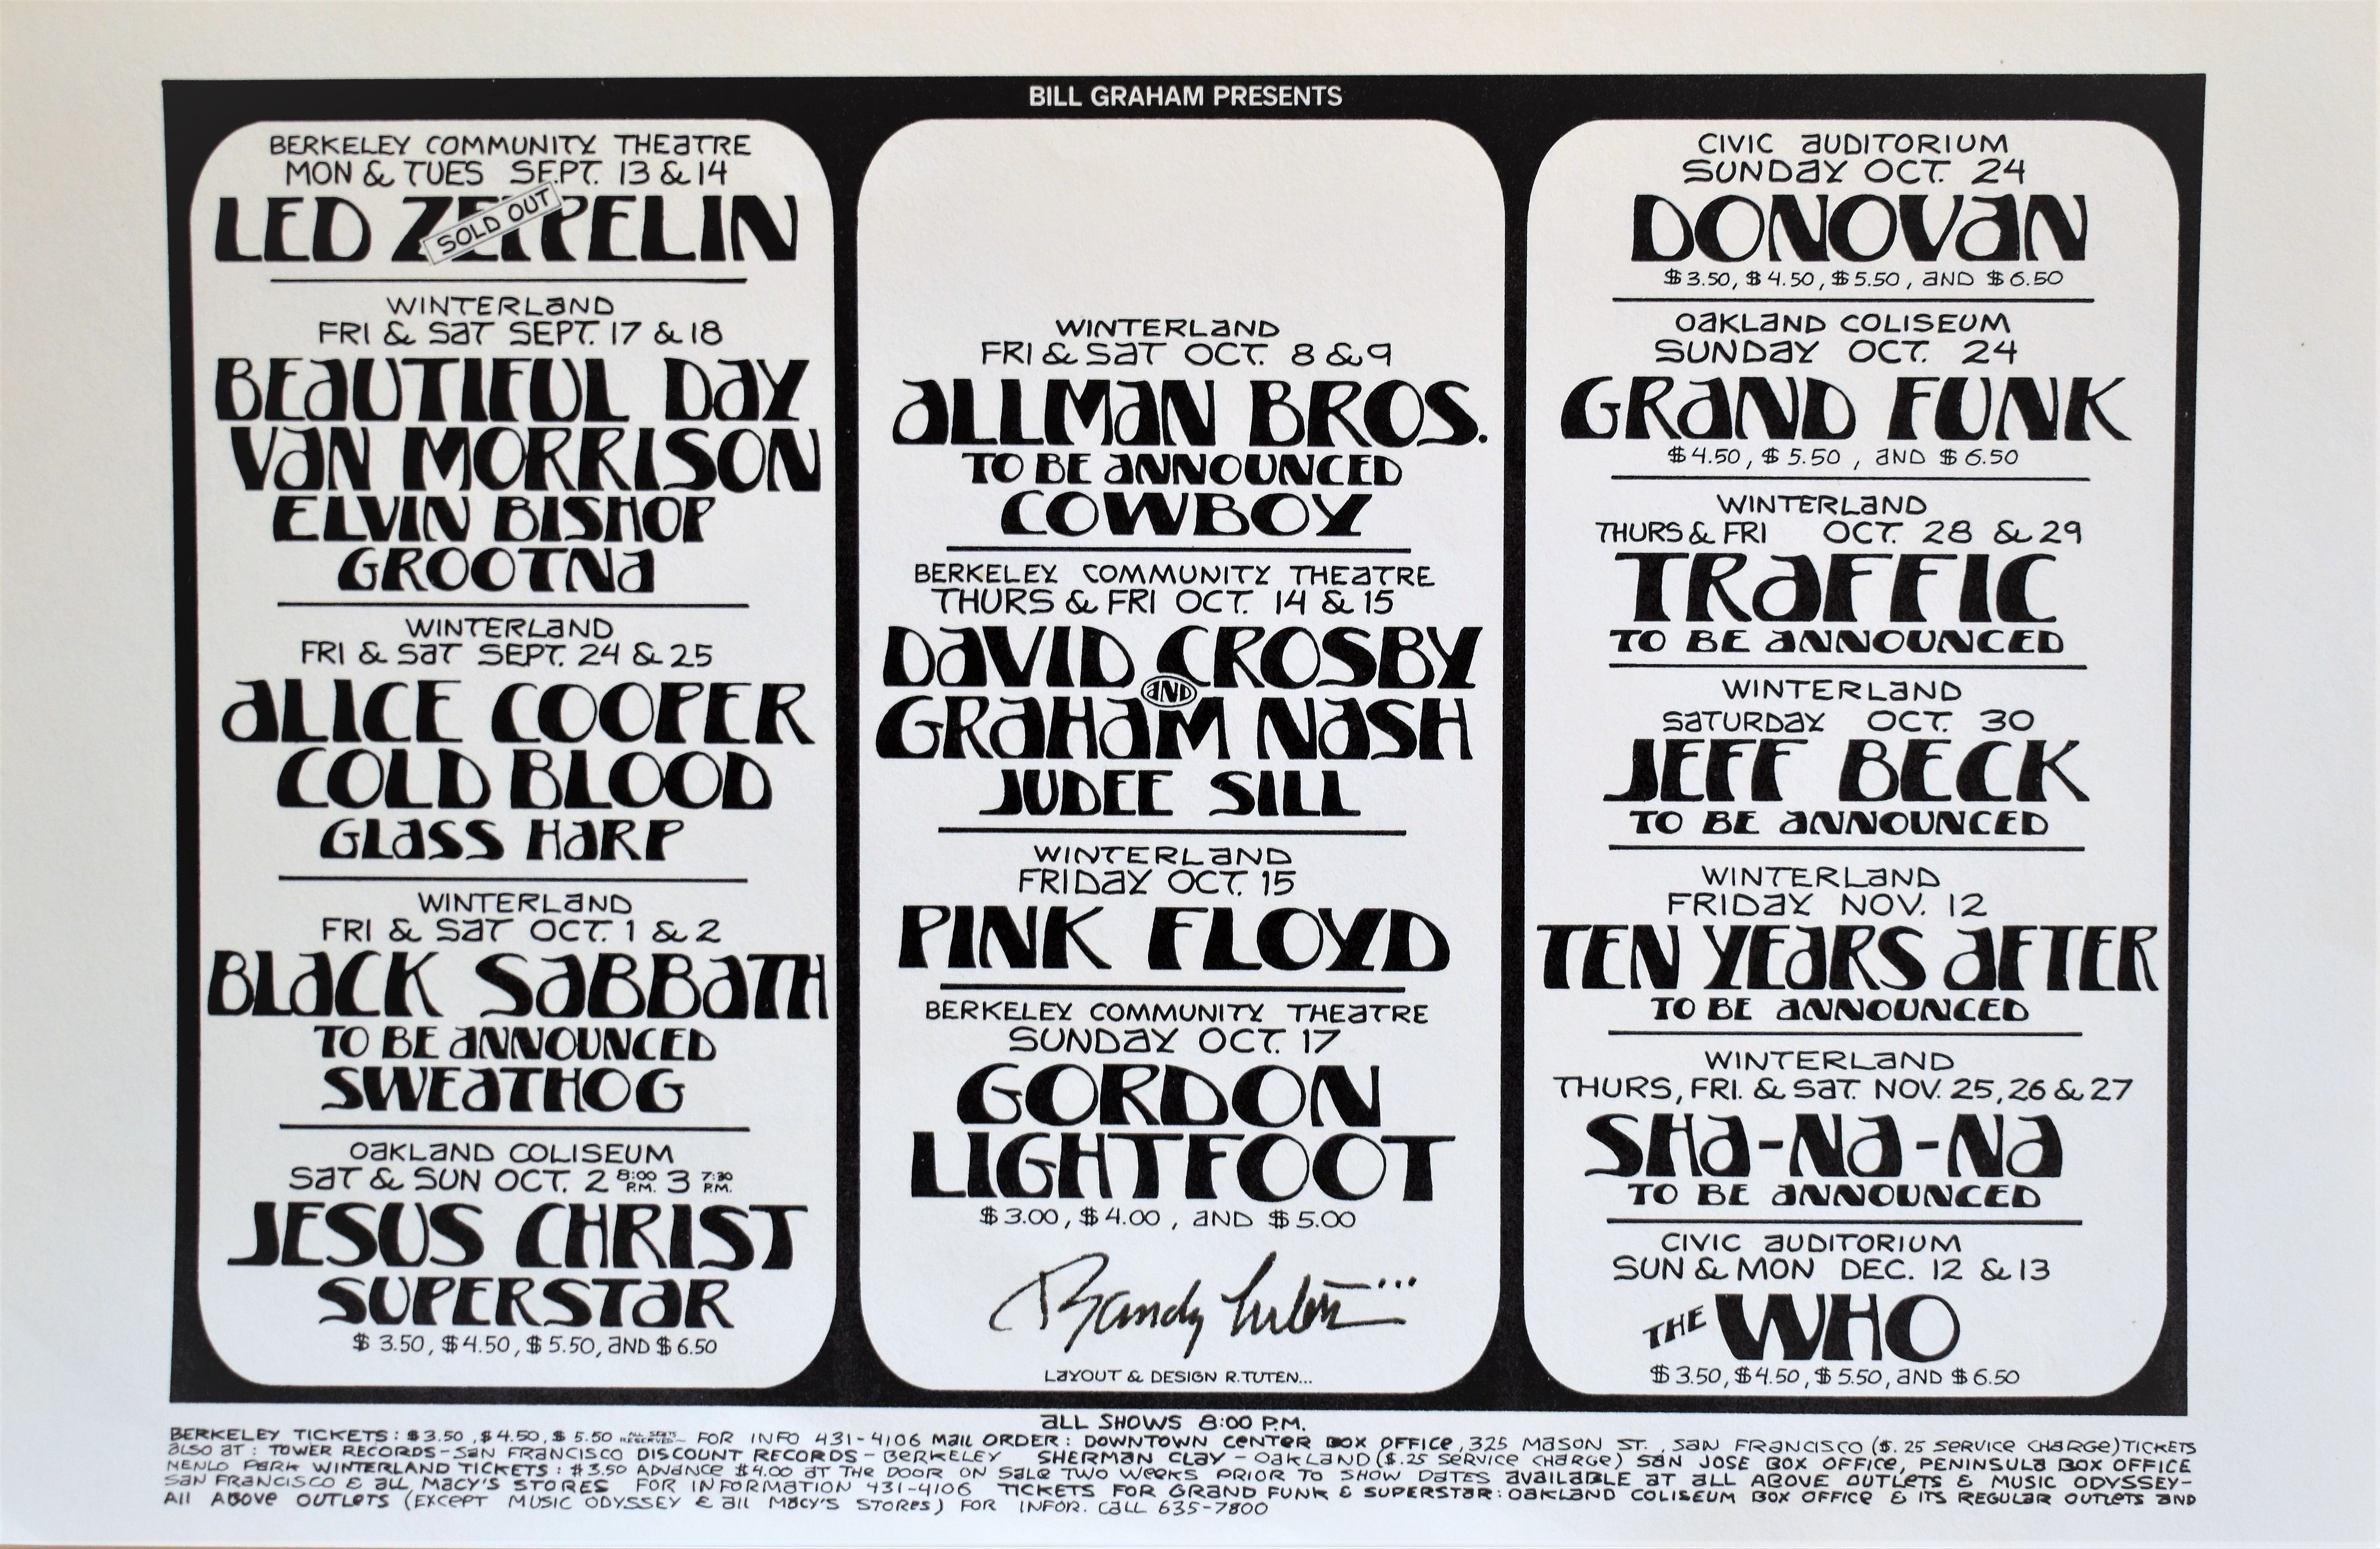 Led Zeppelin Handbill 1971 Signed By Randy Tuten In 2020 Led Zeppelin Led Zeppelin Poster Pink Floyd